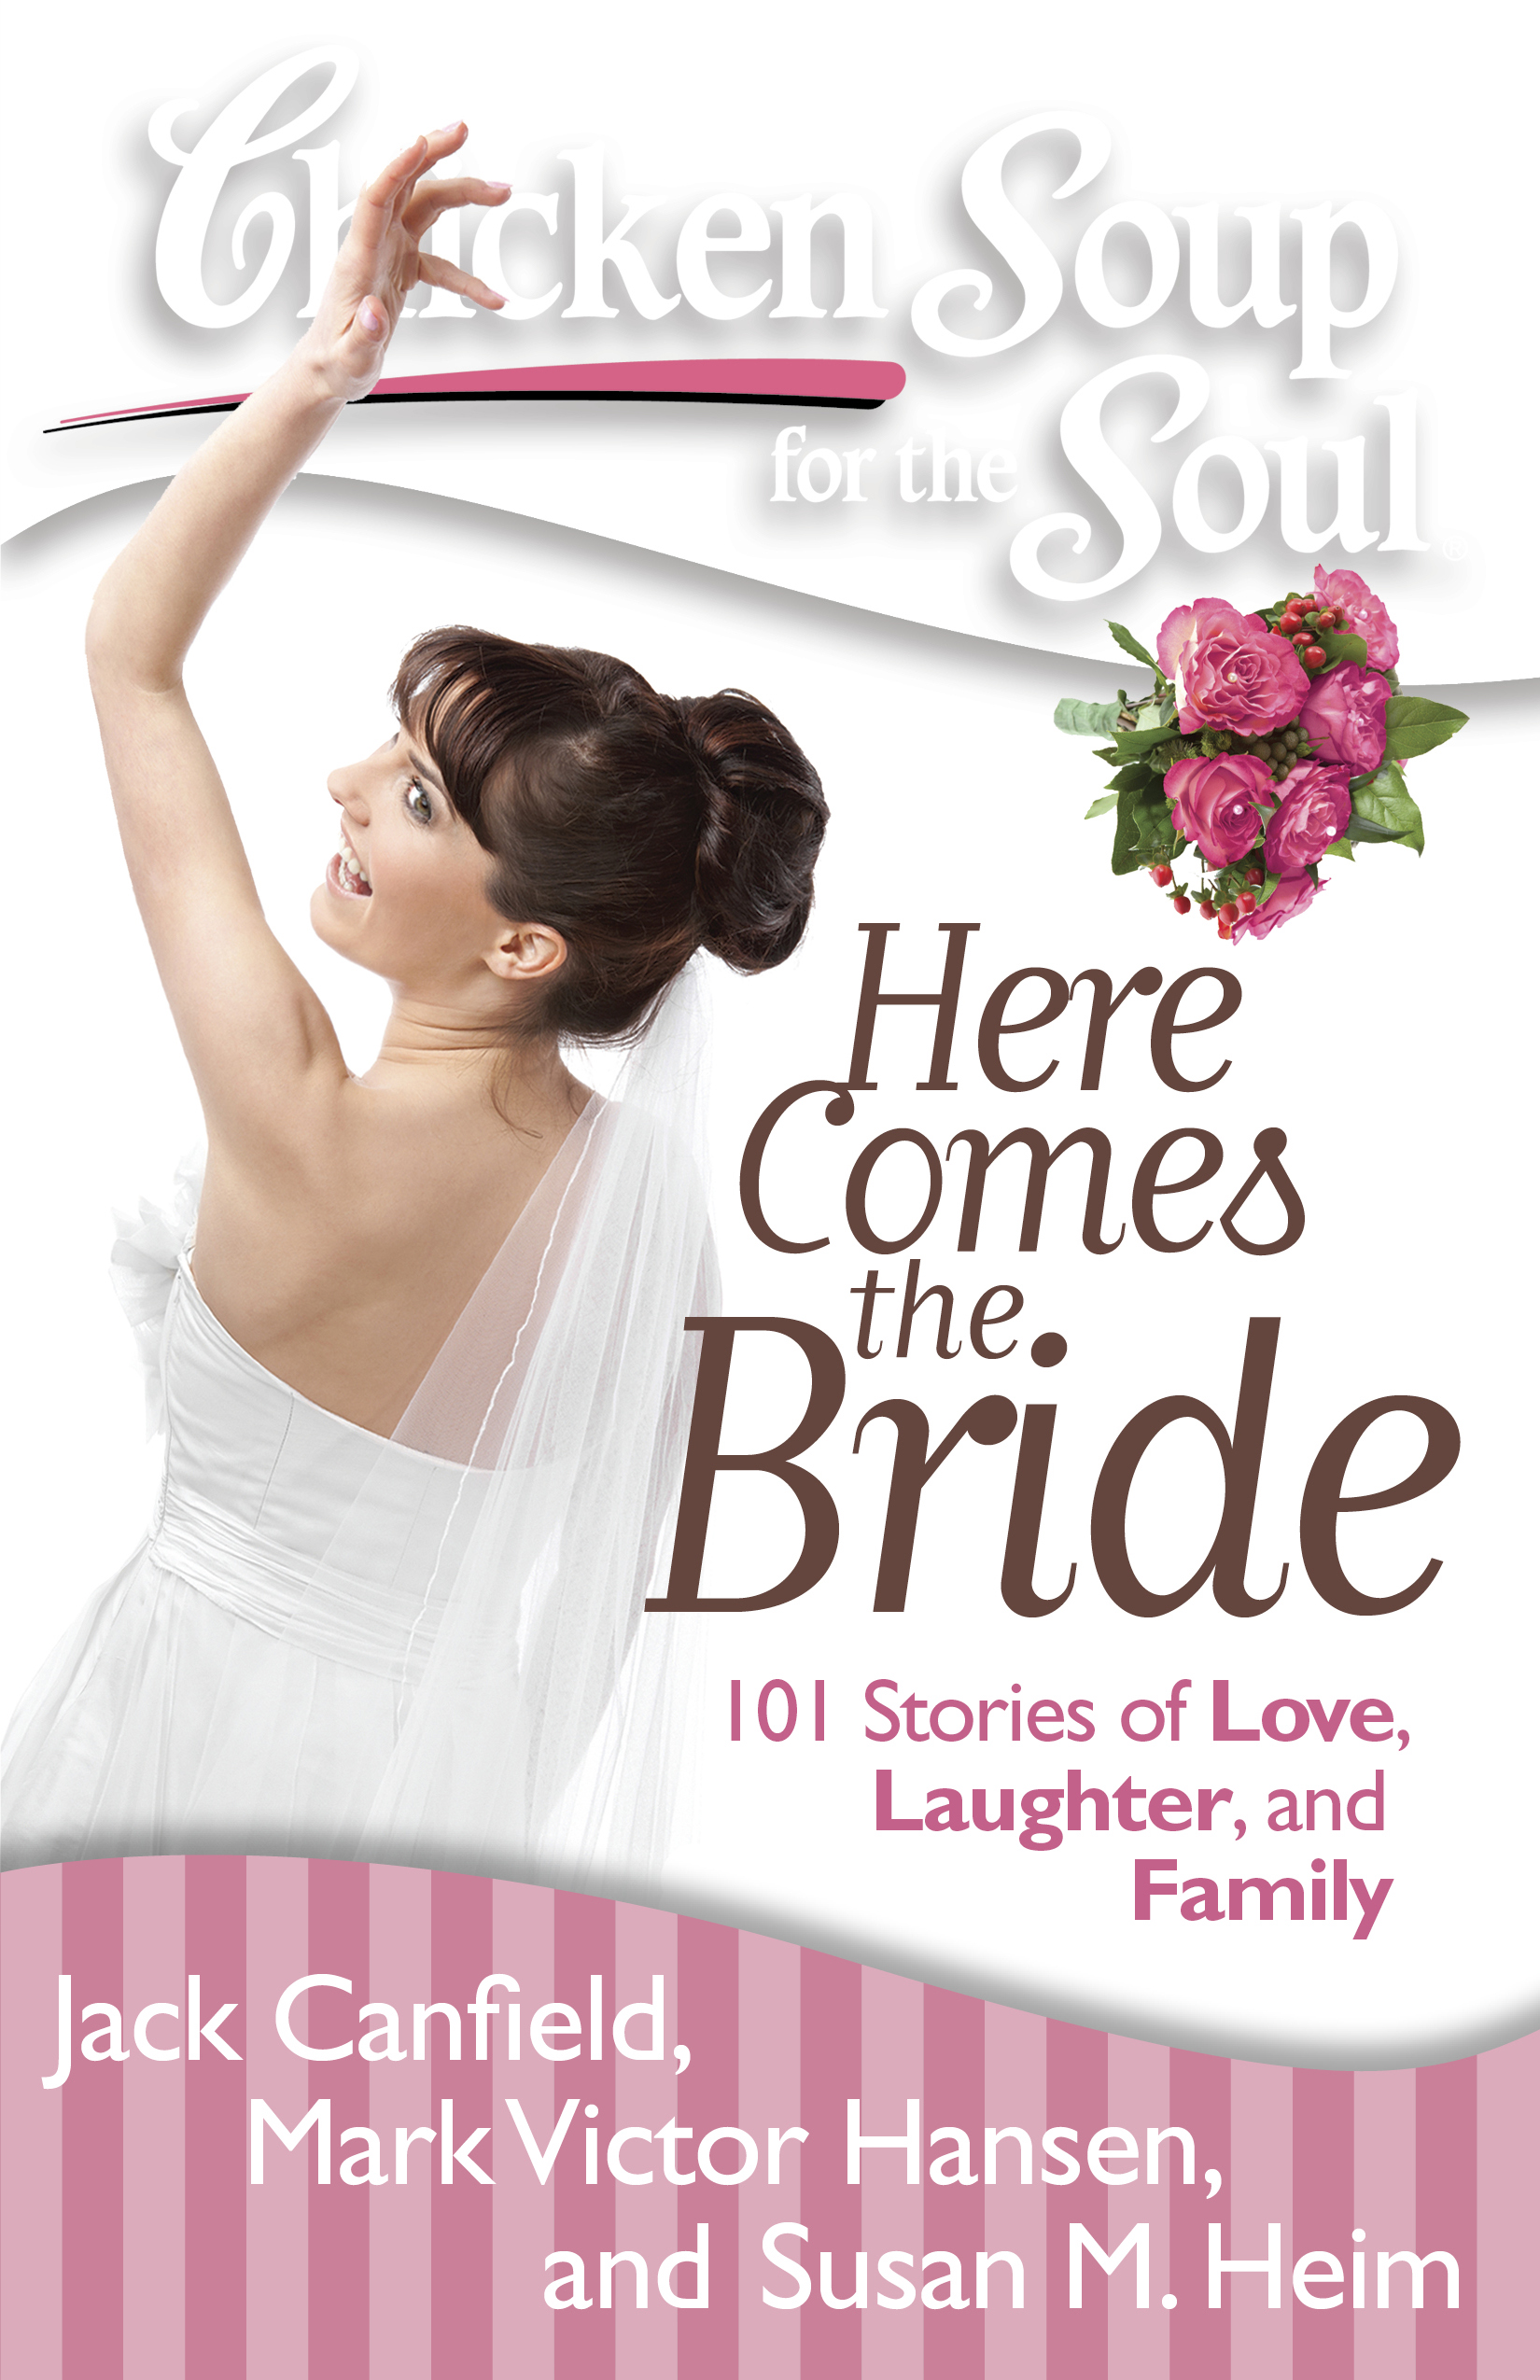 Chicken Soup for The Soul Chronicles: Here Comes the Bride. #ChickenSoupForTheSoul